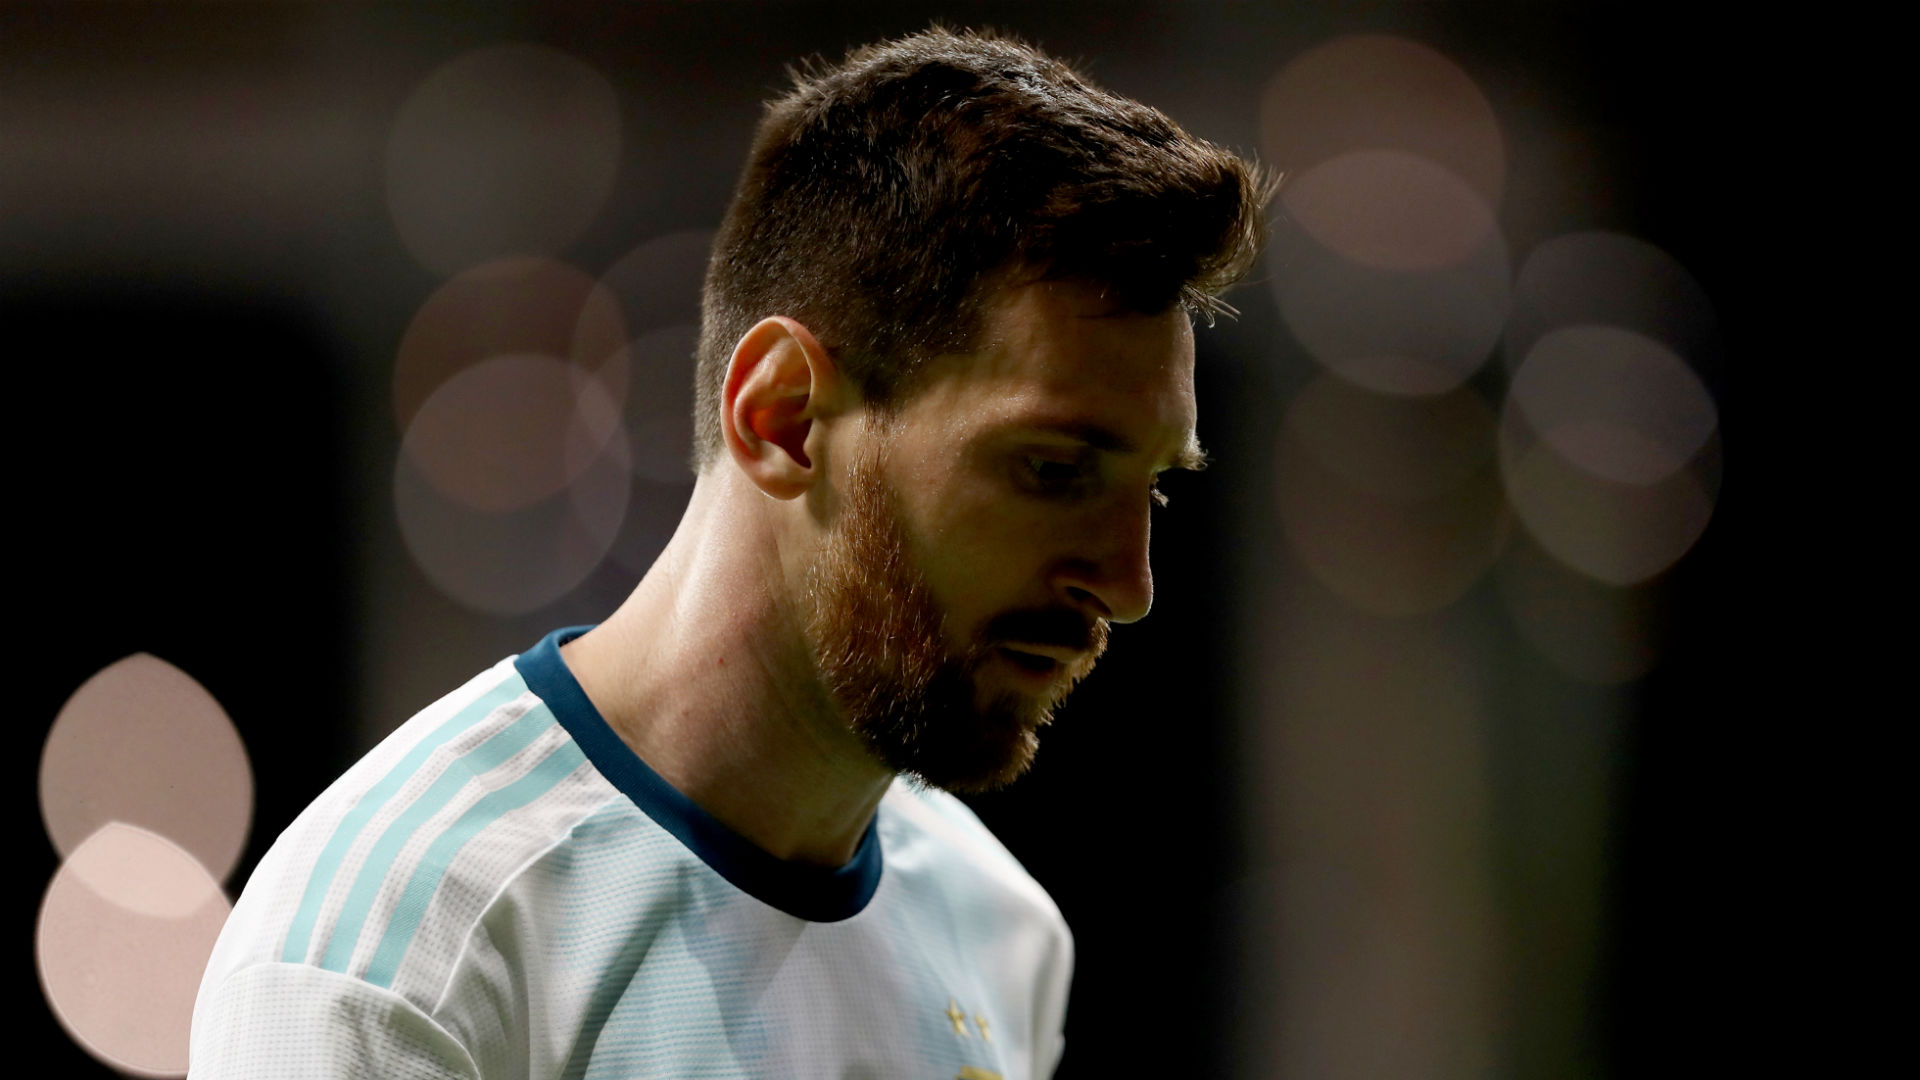 Argentina's draw with Paraguay leaves Lionel Messi running out of chances